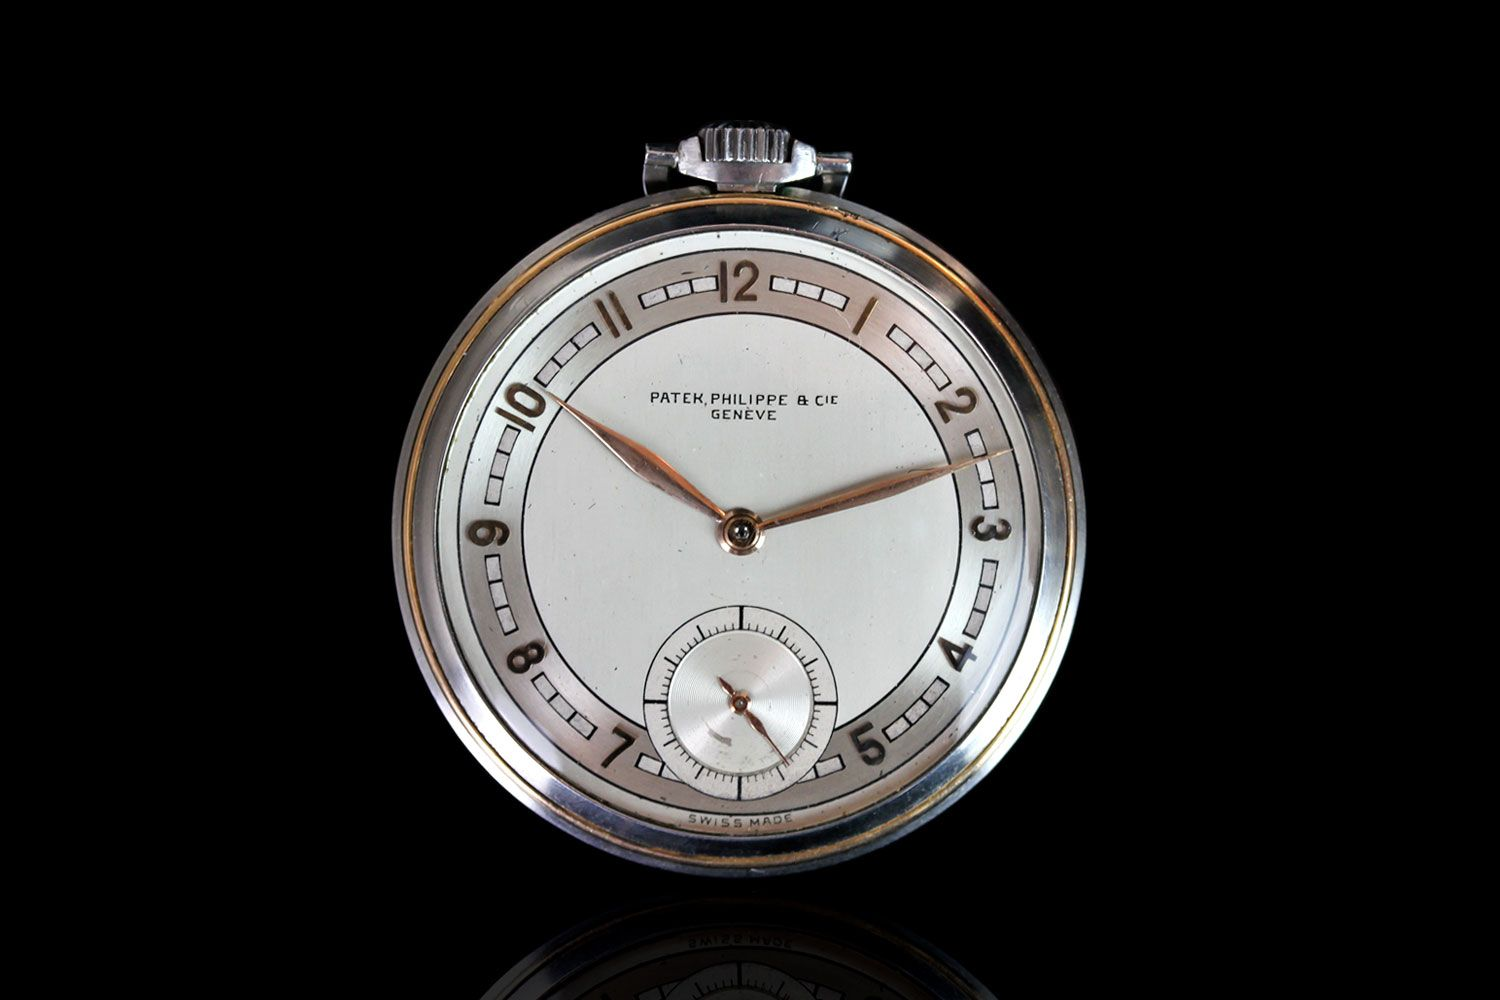 PATEK PHILIPPE KEYLESS POCKET WATCH, BRUSHED STEEL WITH SUBSIDIARY SECONDS, MANUALLY WOUND POCKET